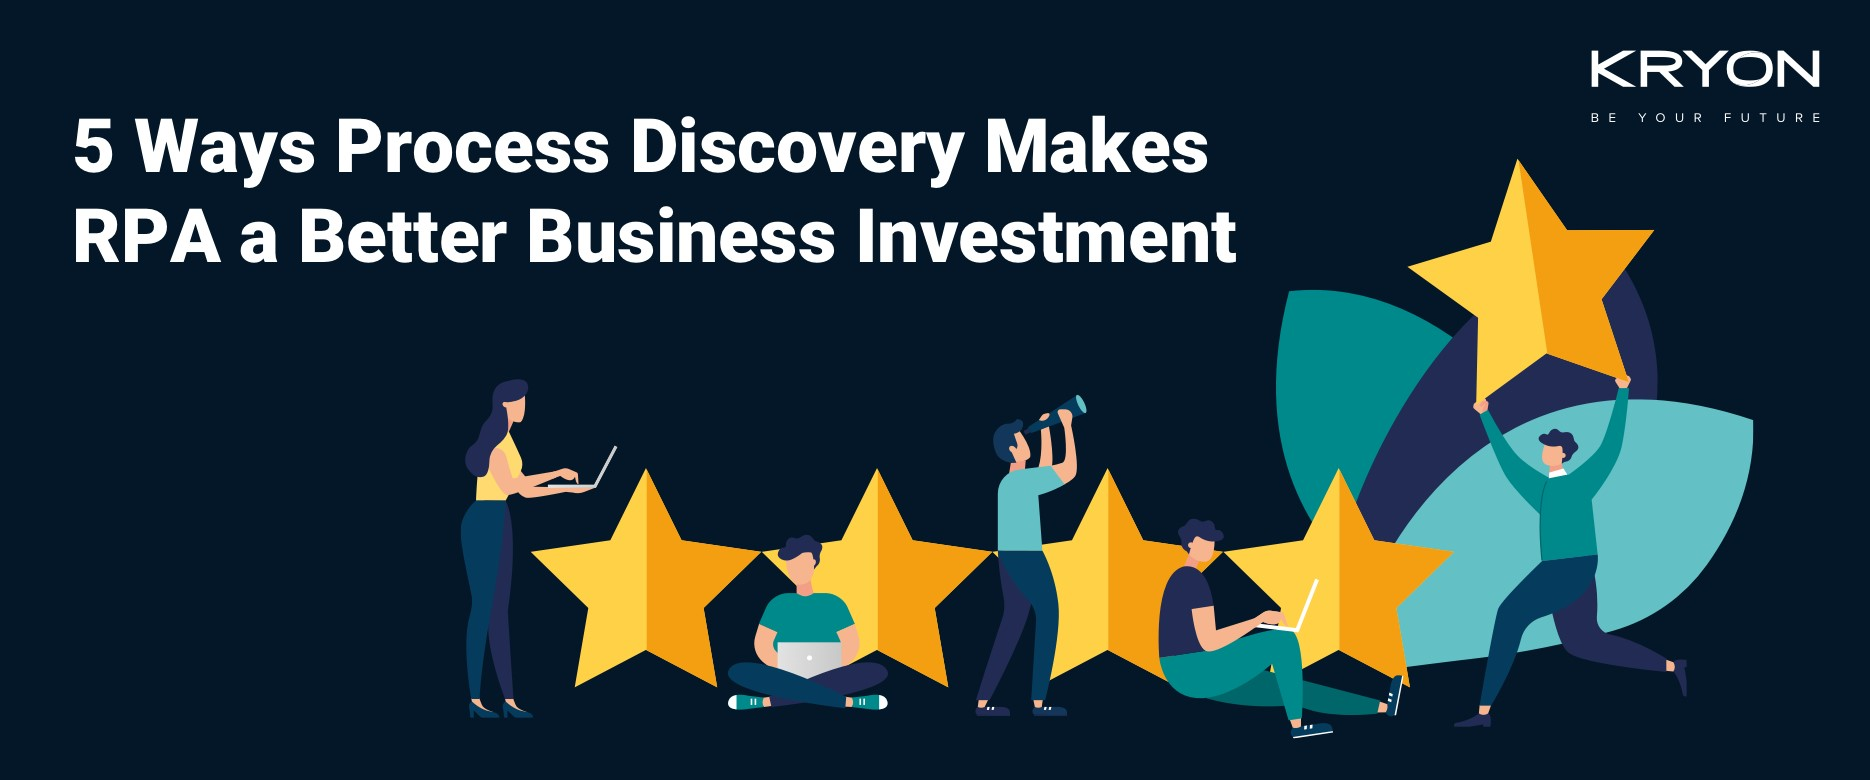 5 Ways Process Discovery Makes RPA a Better Business Investment